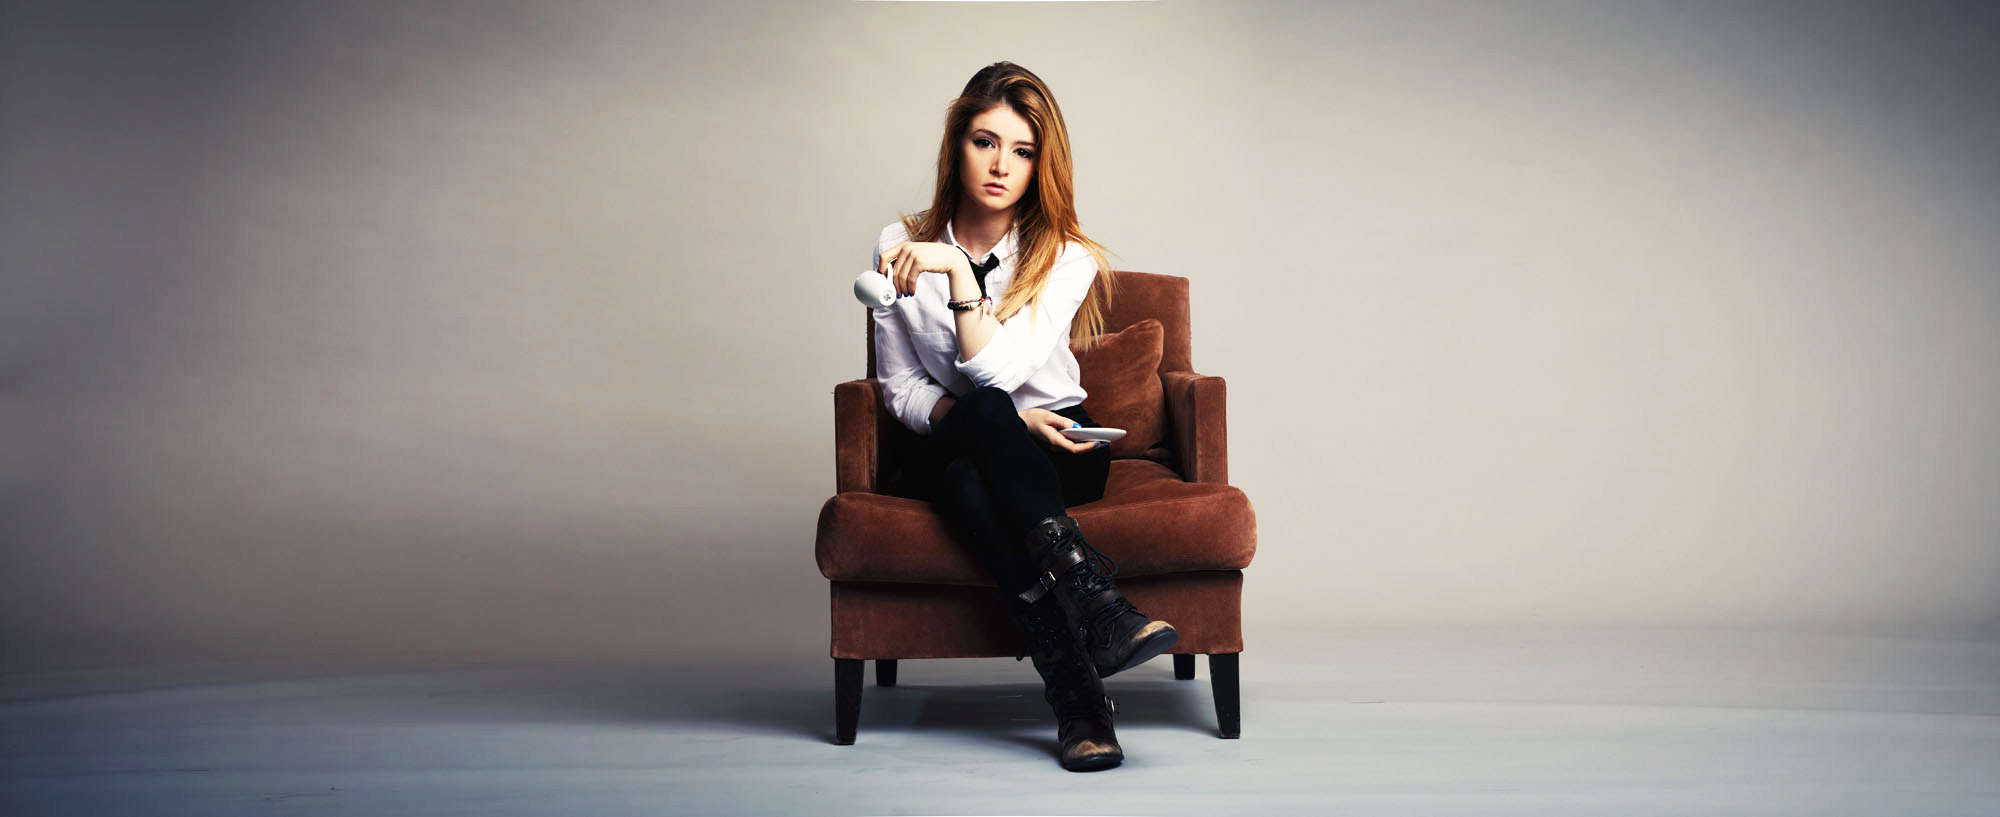 Awesome Chrissy Costanza Wallpaper